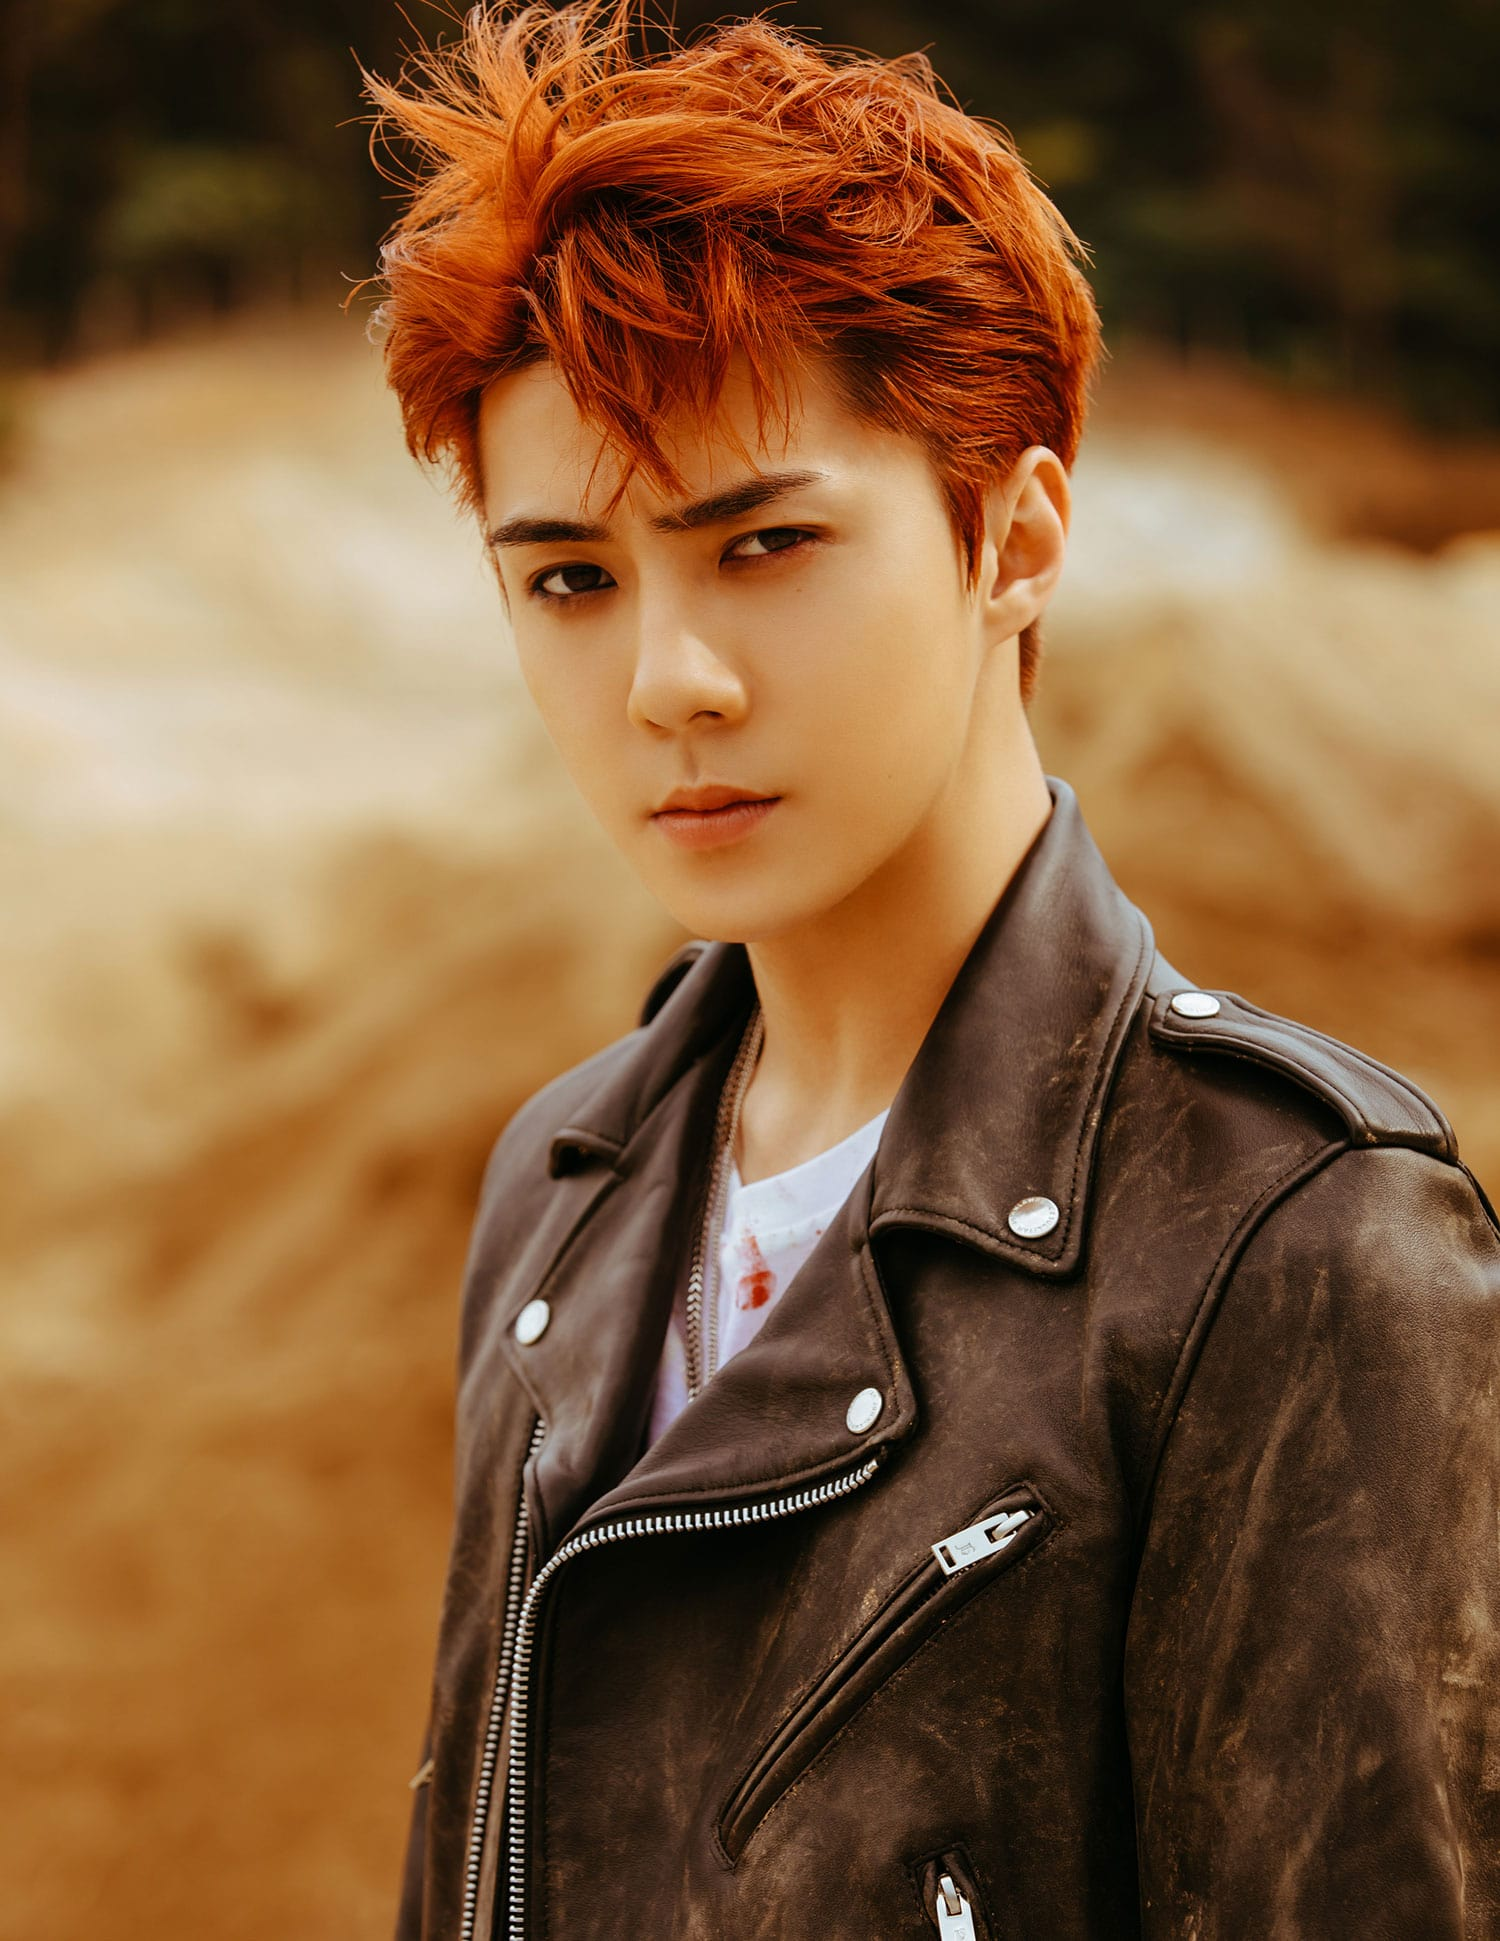 Exo Sehun Vs NCT Jaehyun Visual Battle Allkpop Forums